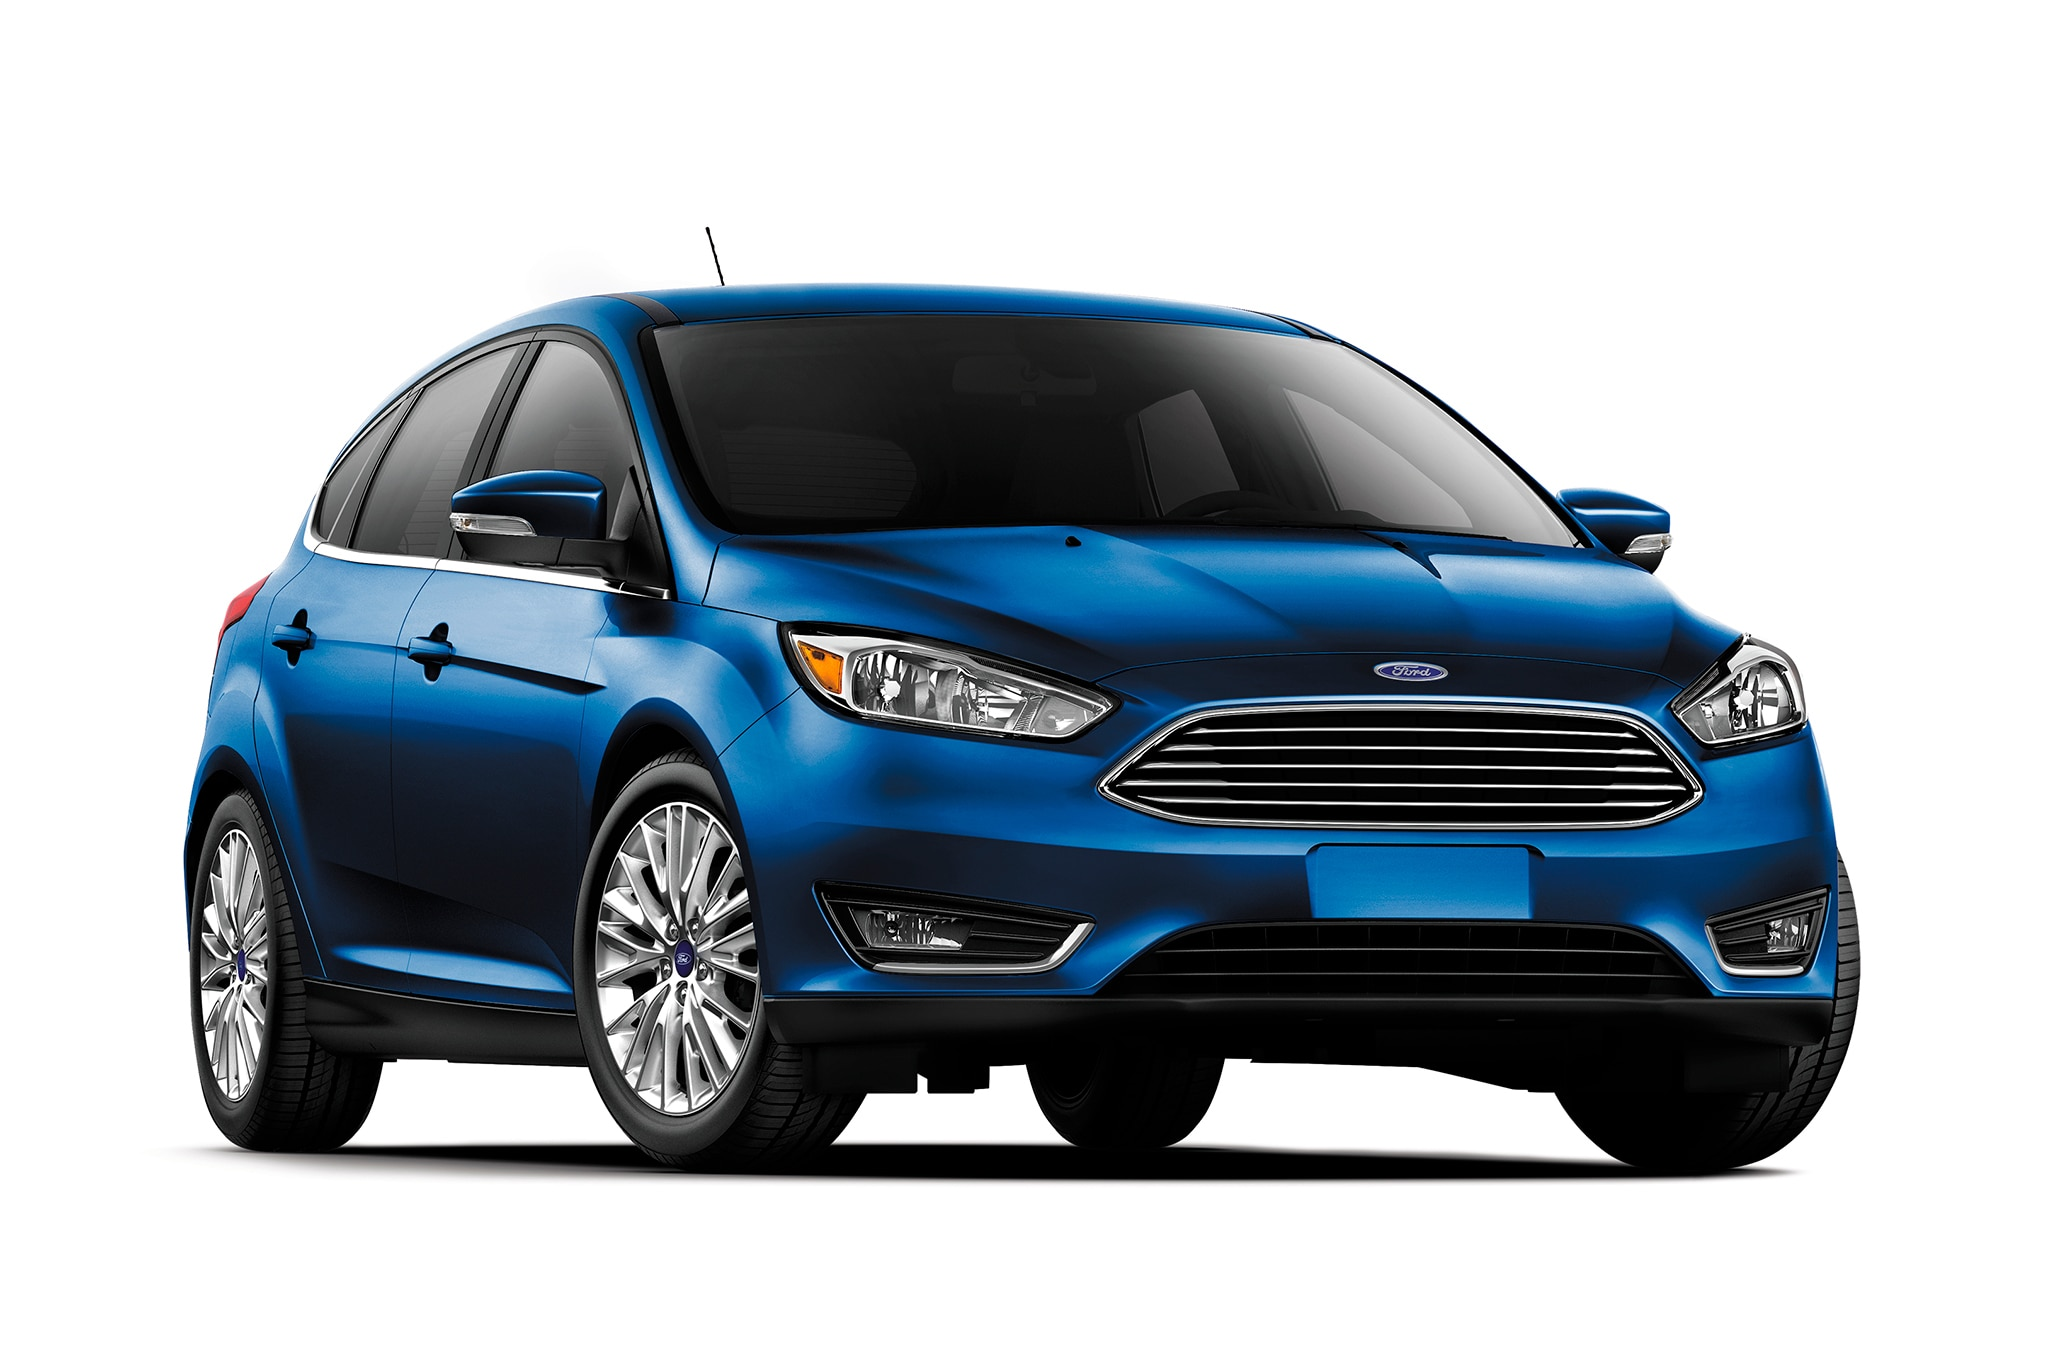 2014 Ford Focus Warranty >> Ford Focus Rs Rx | 2017, 2018, 2019 Ford Price, Release Date, Reviews